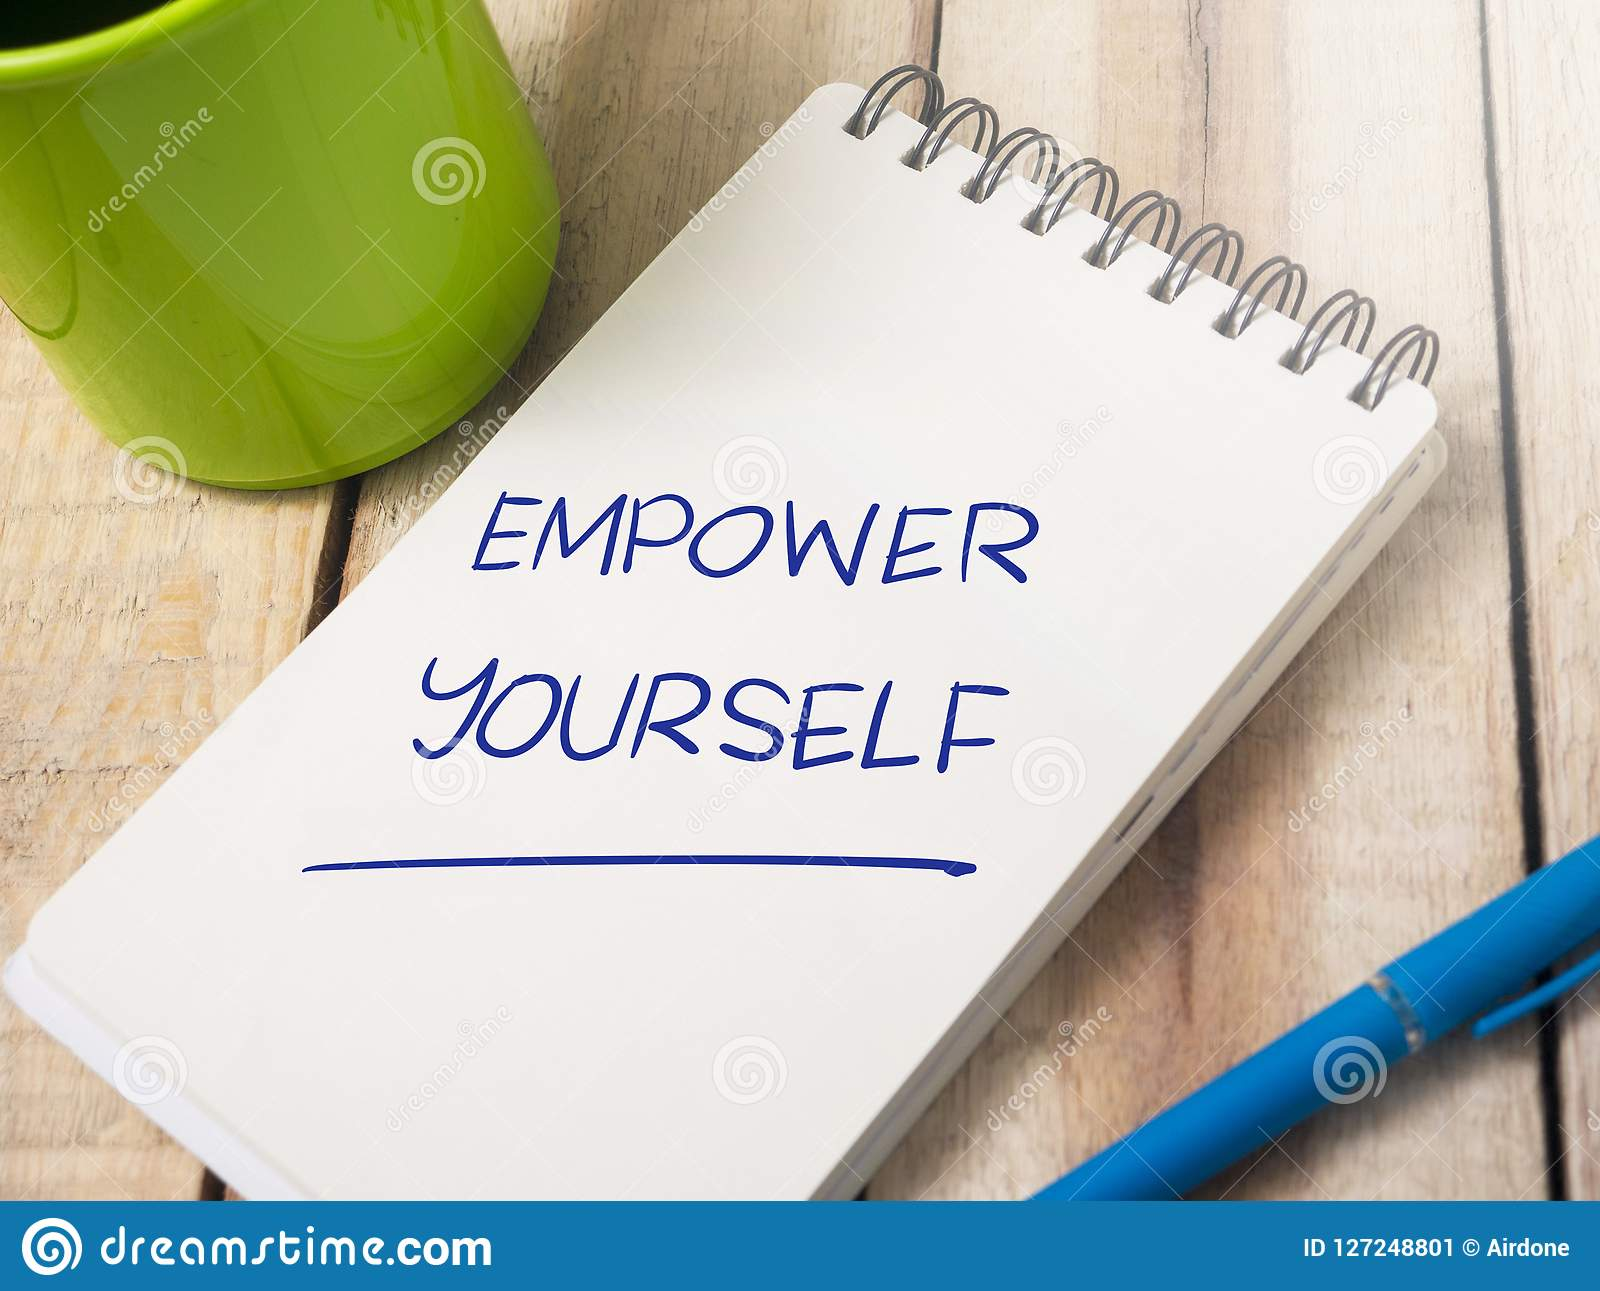 Empower Yourself Motivational Words Quotes Concept Stock Image